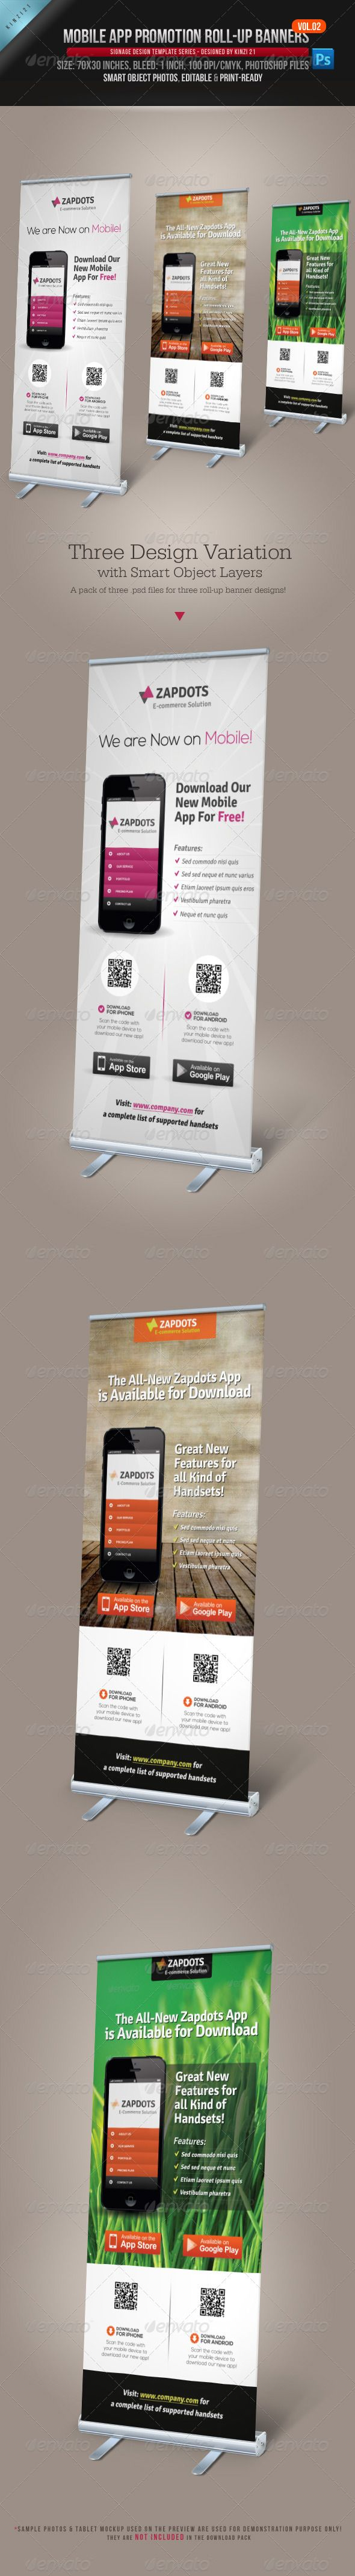 Mobile App Promotion Roll-up Banners Vol.02 - download it at: http://graphicriver.net/item/mobile-app-promotion-rollup-banners-vol02/4689886?r=kinzi21